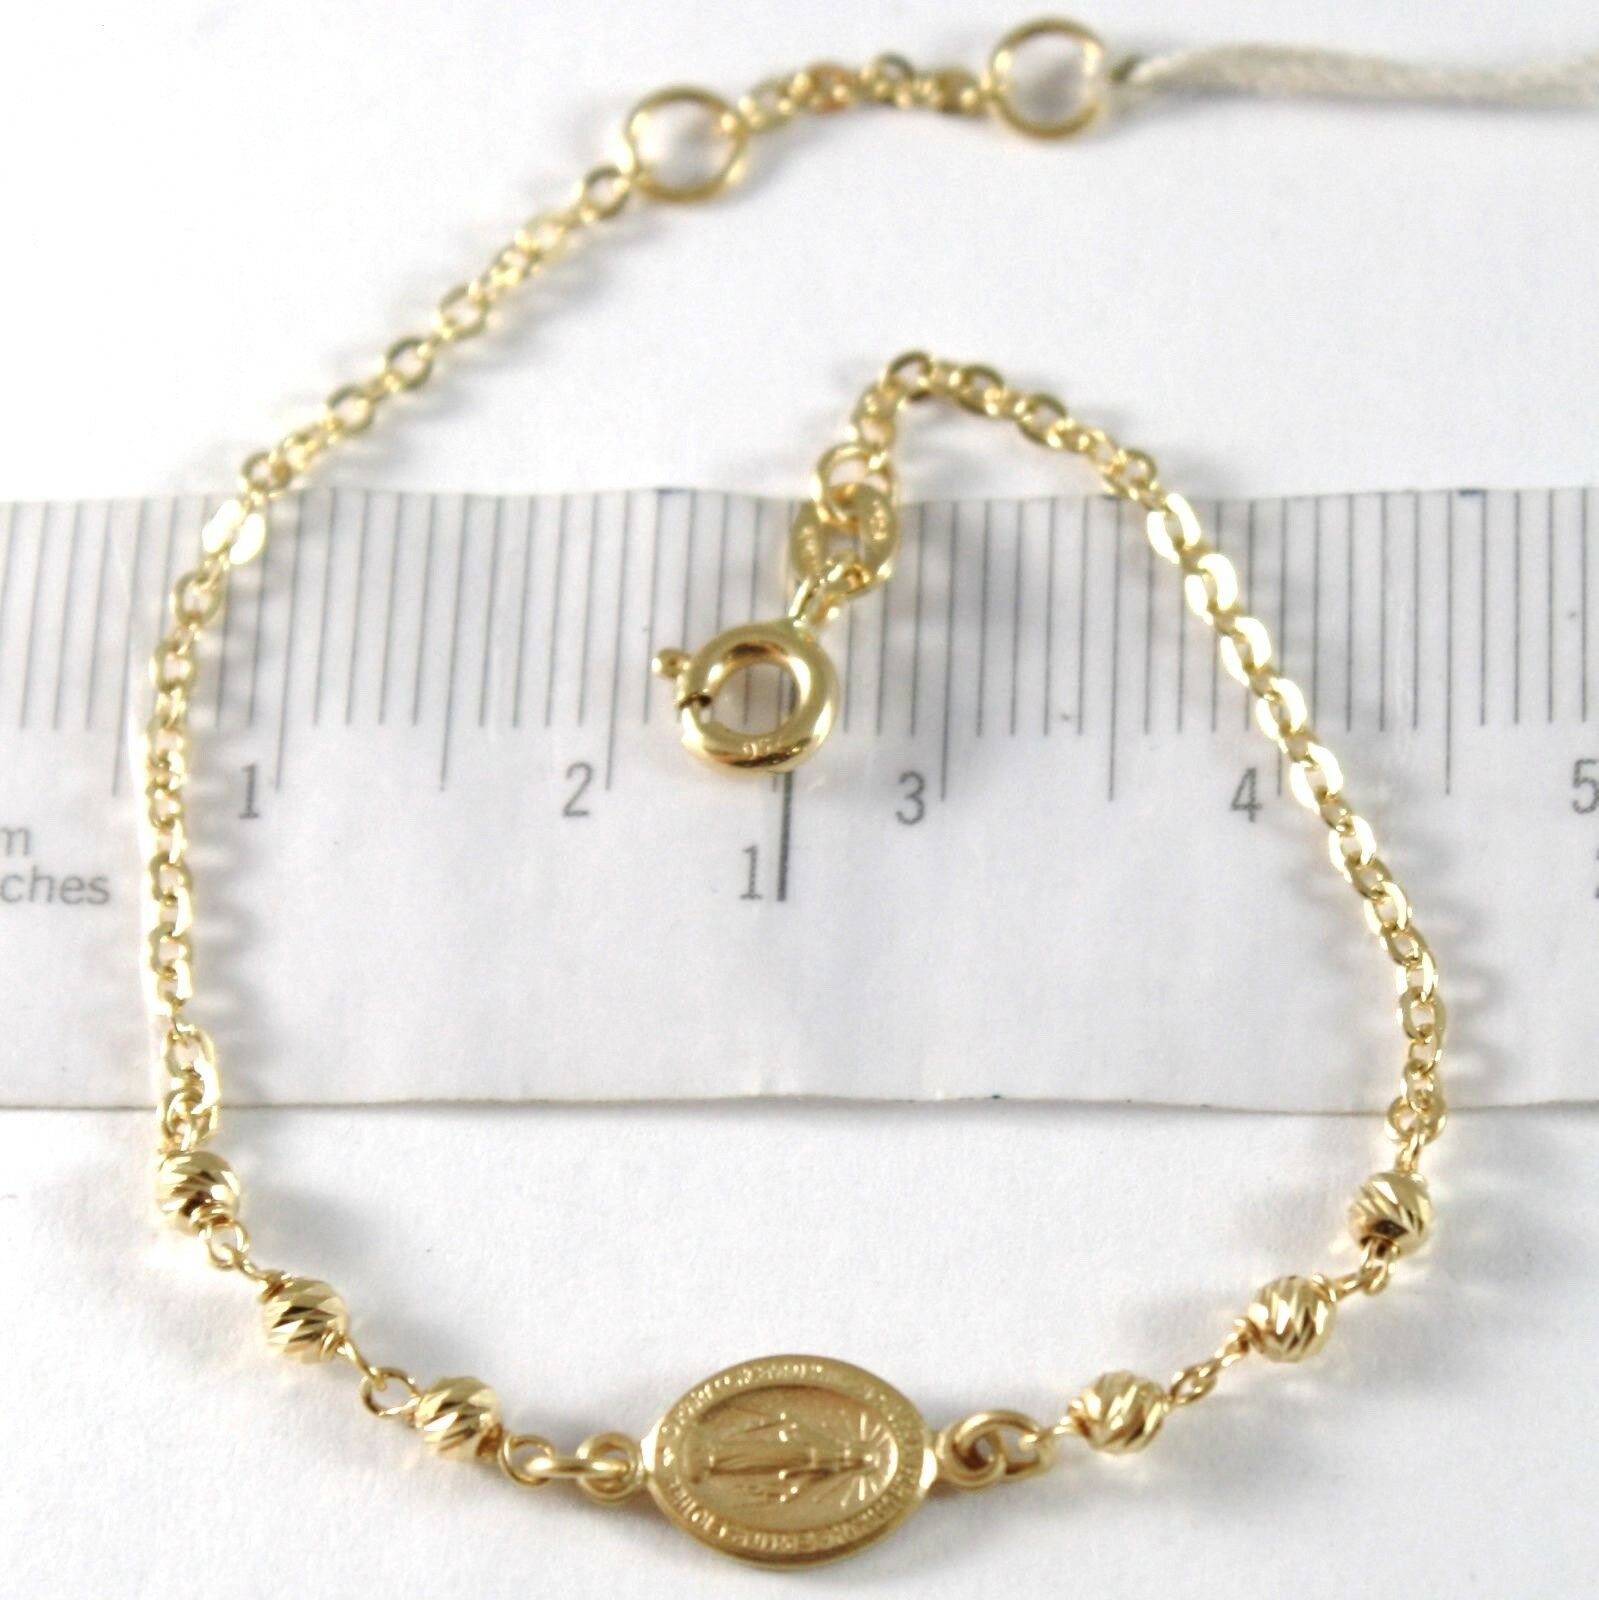 Yellow Gold Bracelet 750 18k, ROLO, Balls Faceted Miraculous Medal